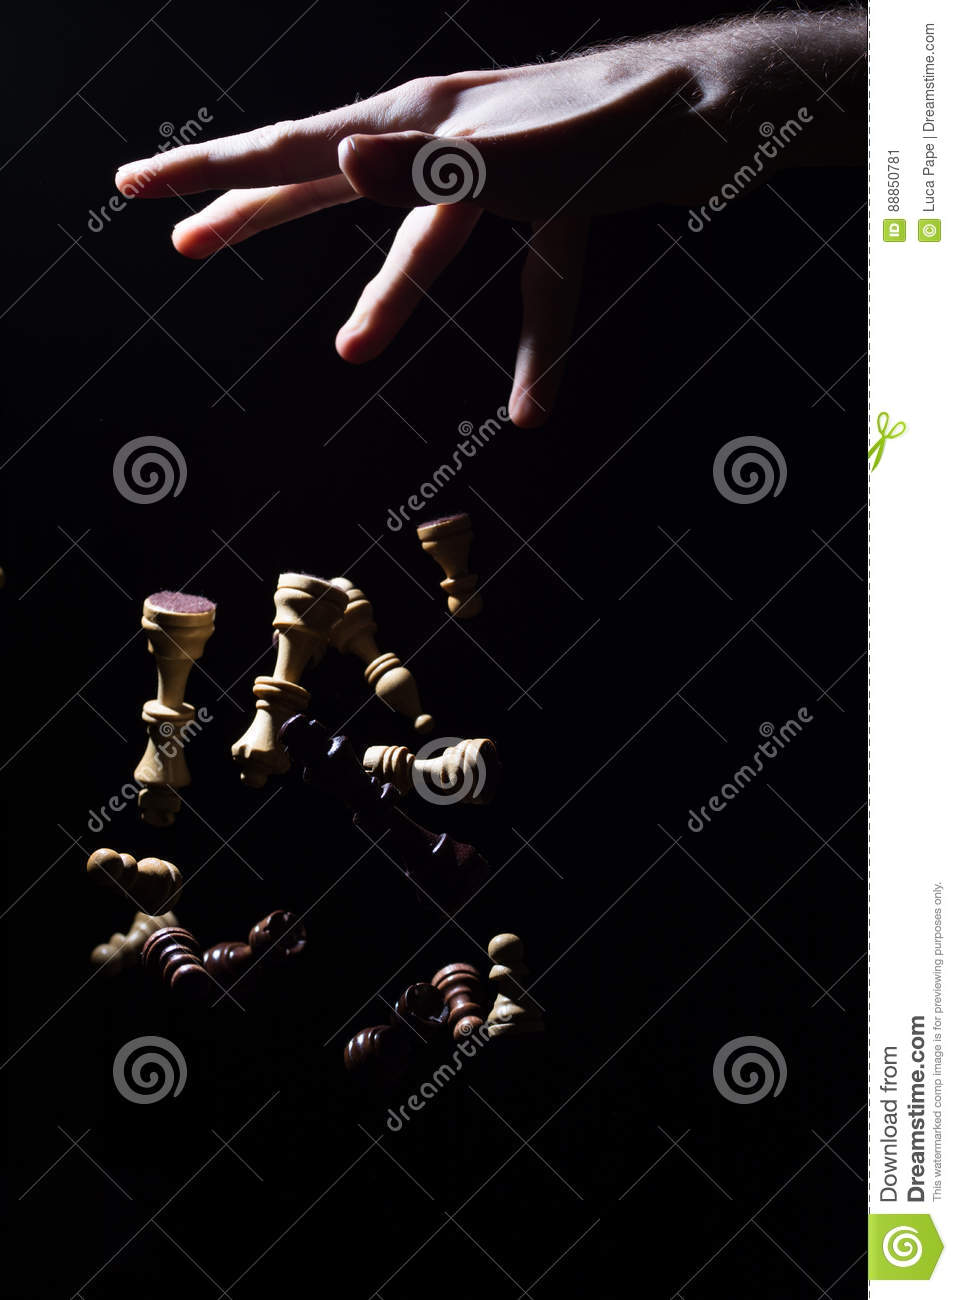 Chess Pieces Falling From Hand Symbol For Power And Control Stock